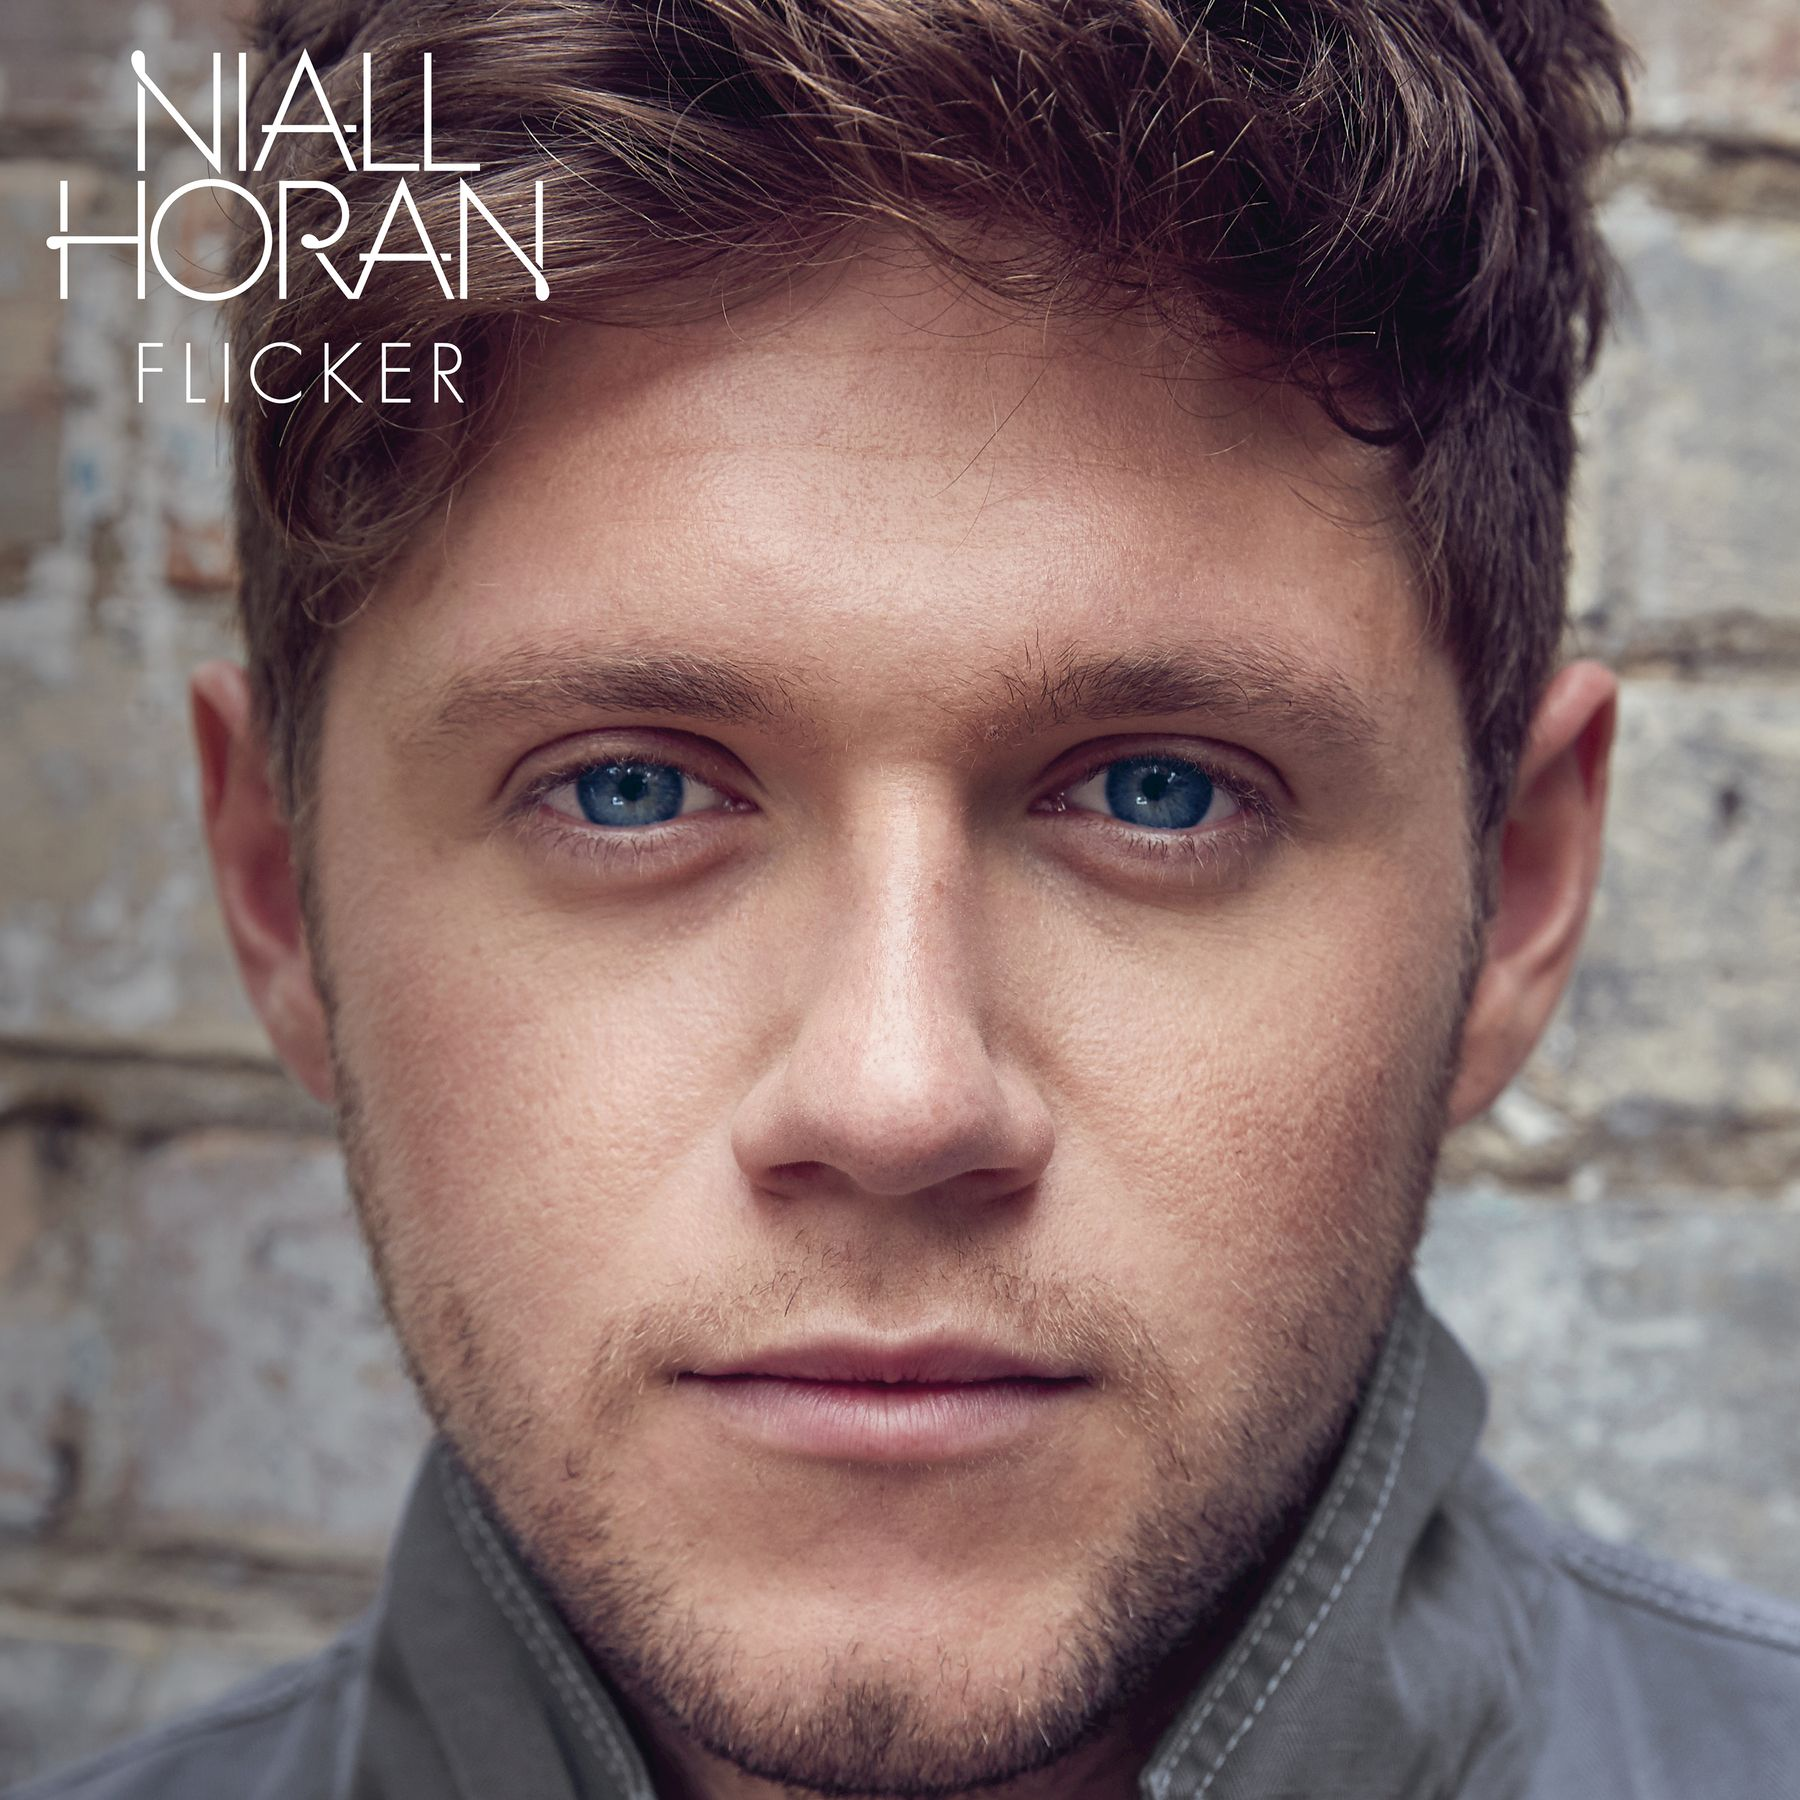 Niall Horan - Flicker album cover